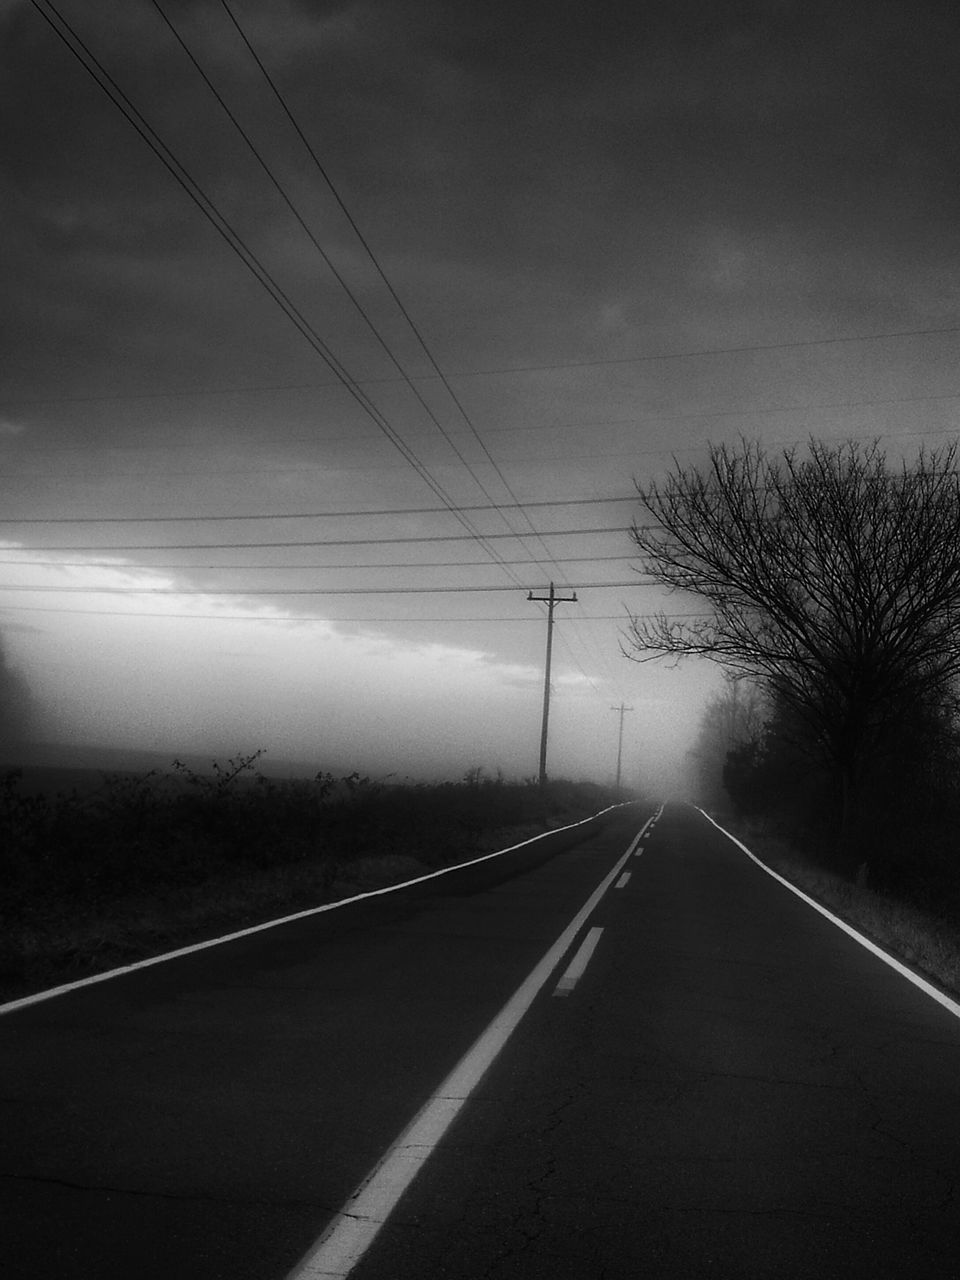 road, cable, transportation, sky, the way forward, power line, tree, no people, connection, nature, day, outdoors, landscape, scenics, tranquility, electricity pylon